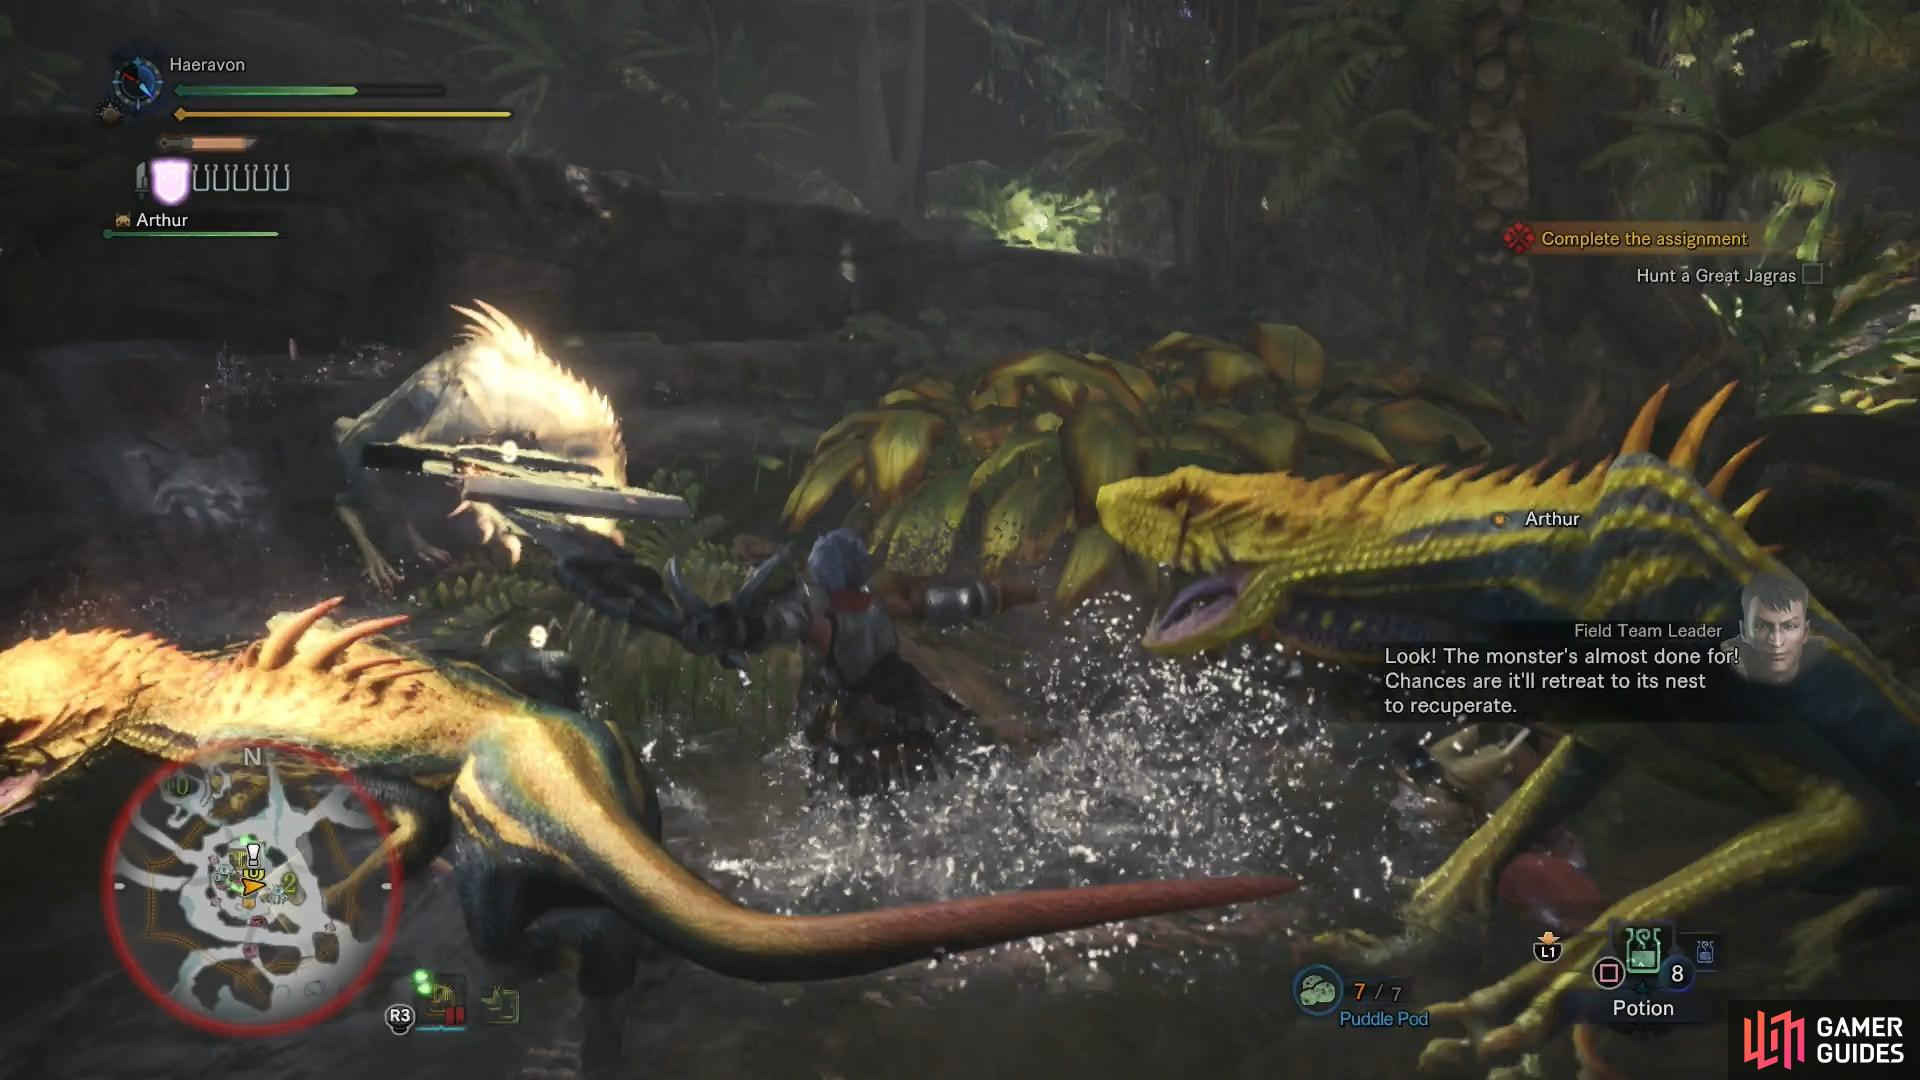 If the Great Jagras retreats to its lair, you'll have to deal with numerous lesser Jagras as well